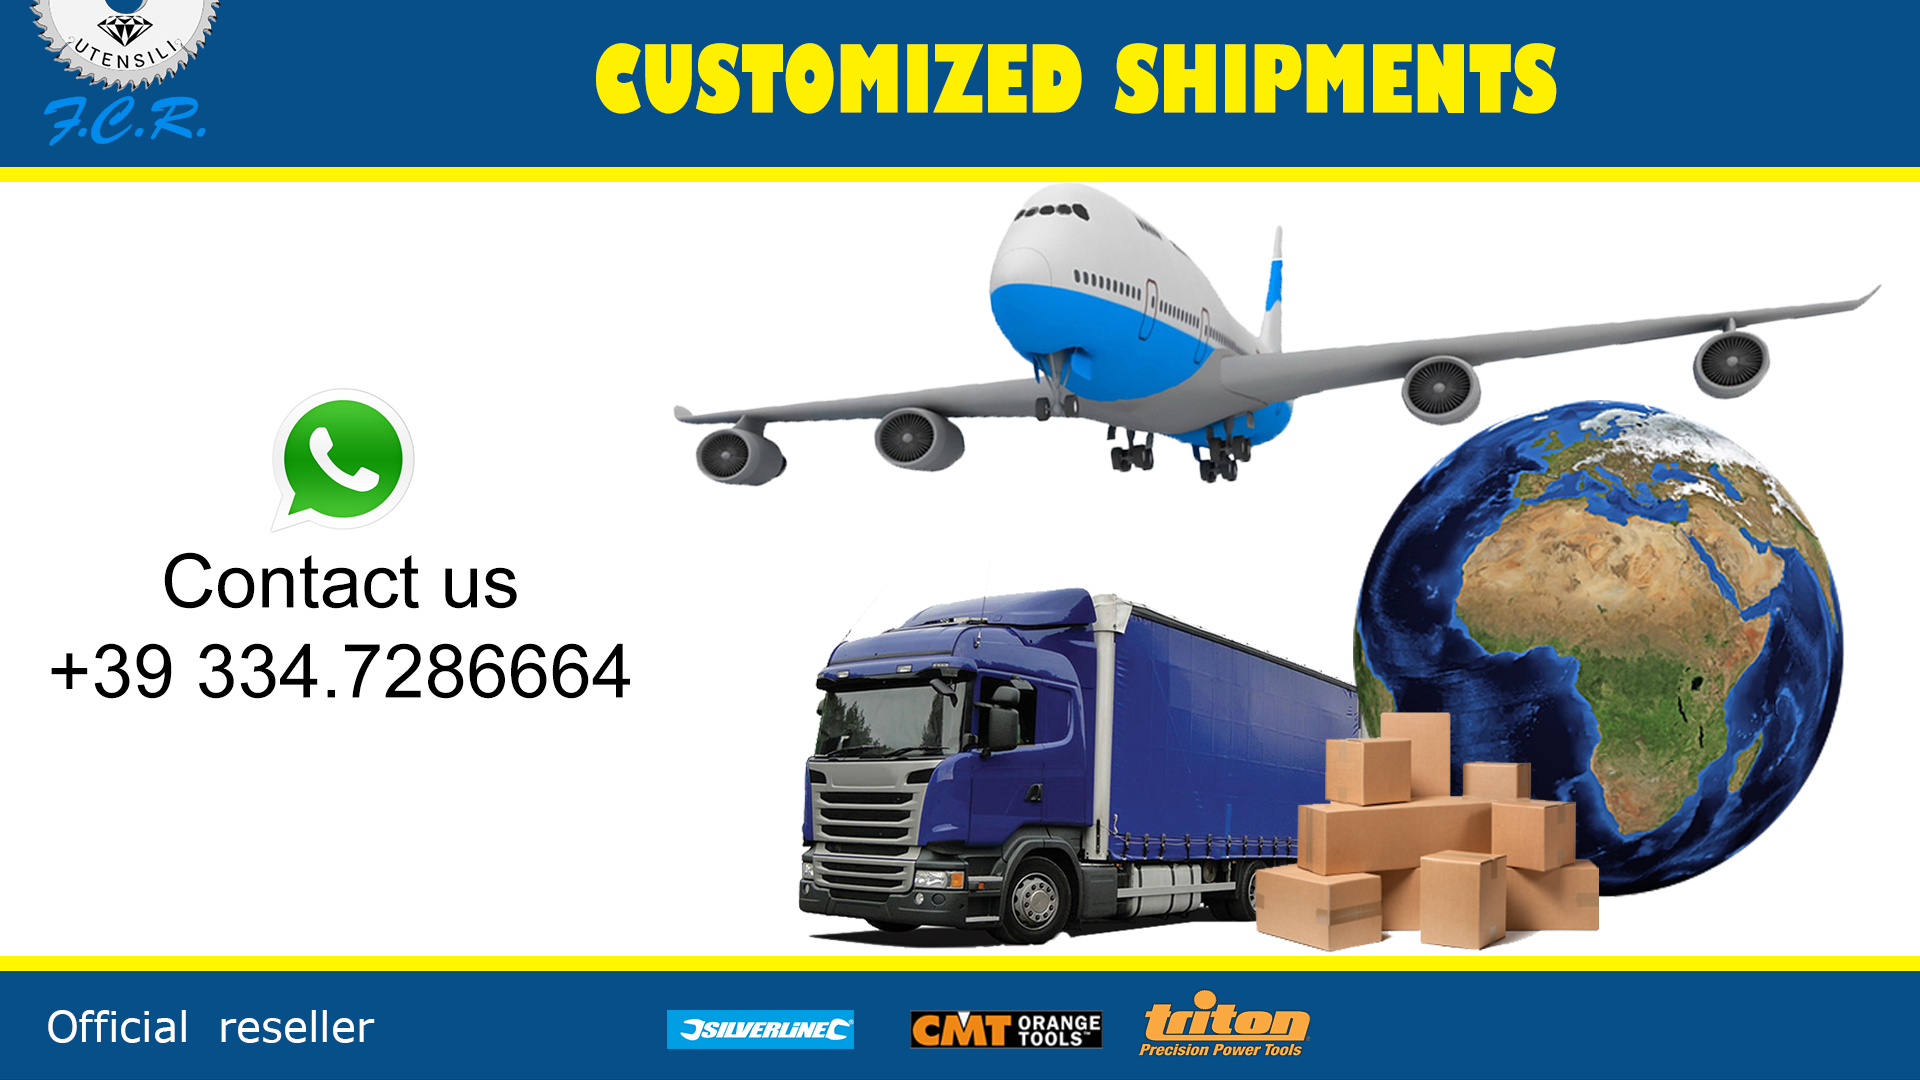 CUSTOMIZED SHIPMENTS